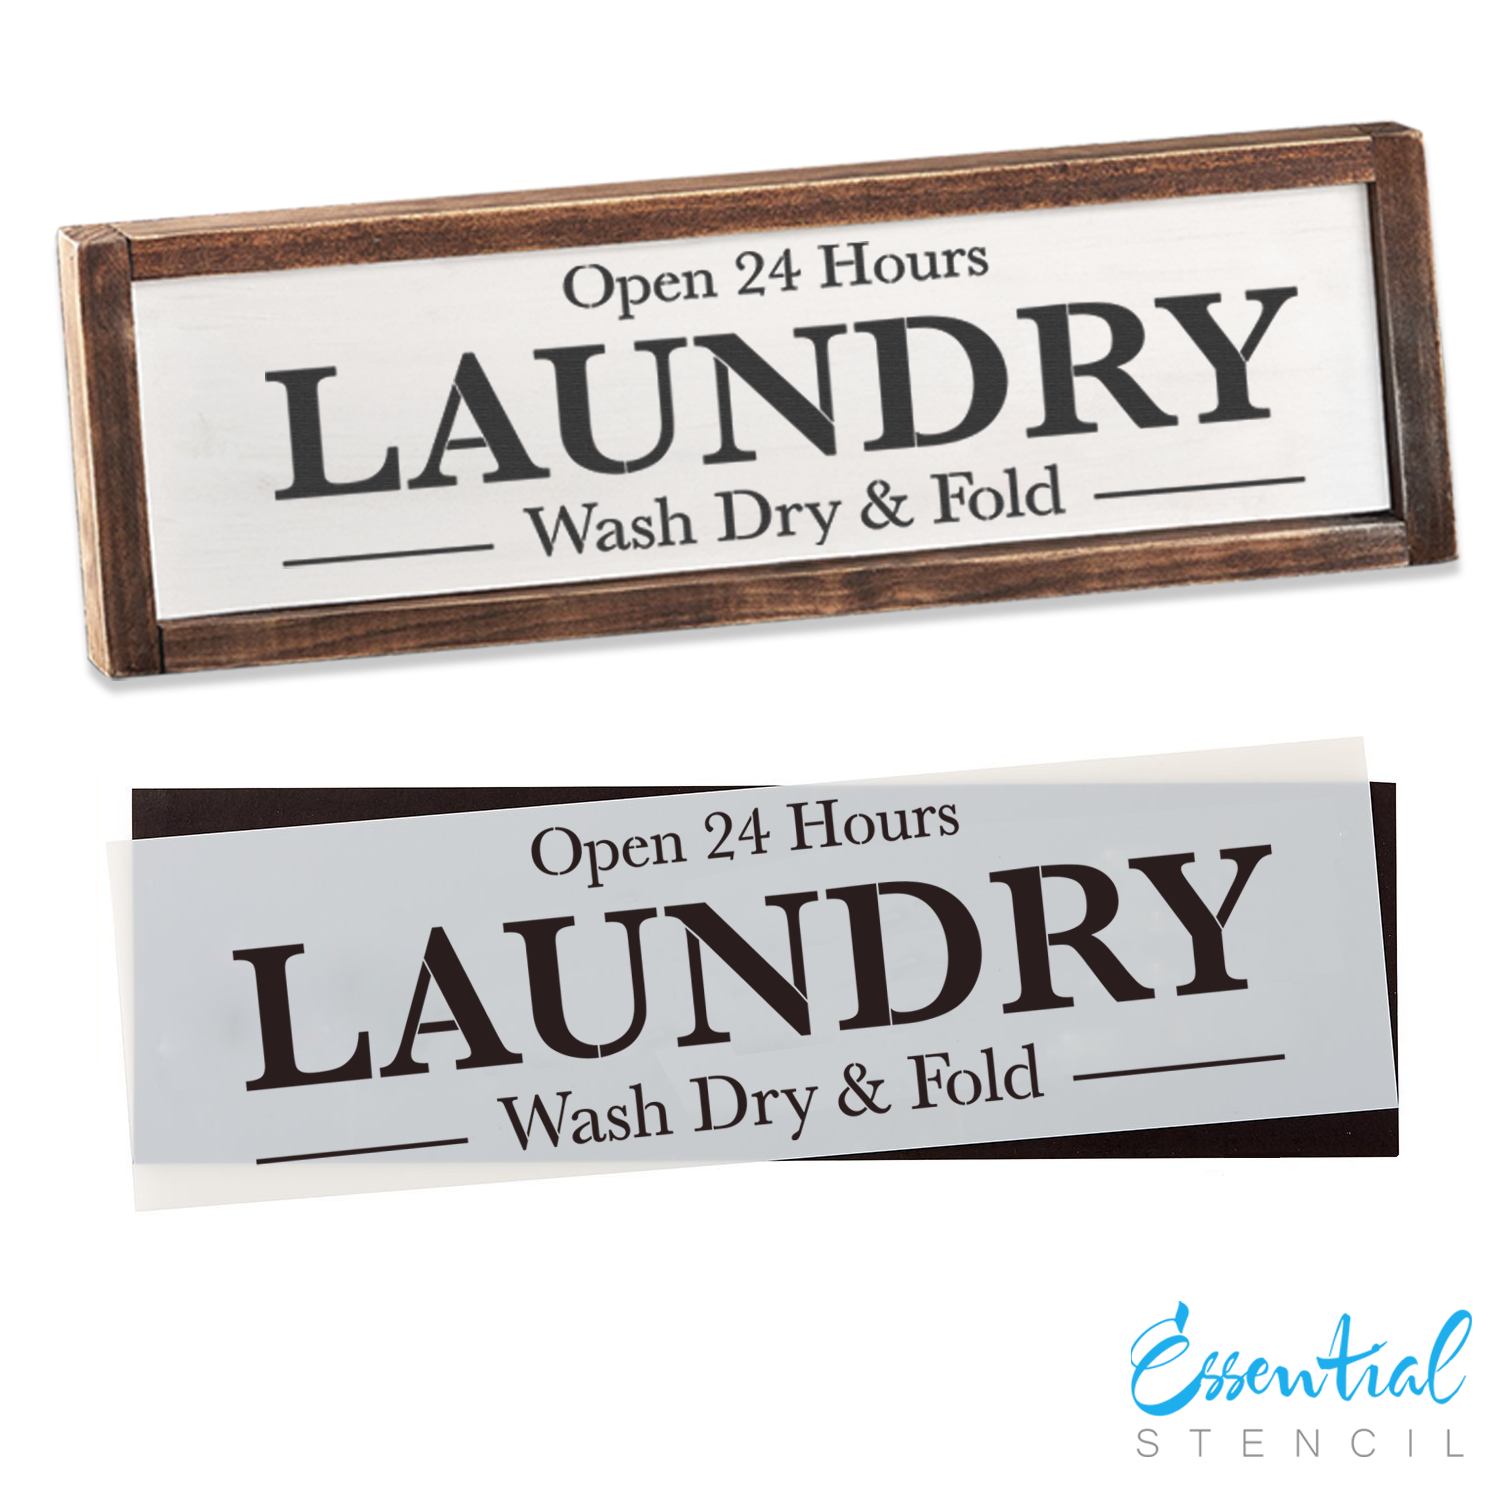 Laundry Sign Stencil | Reusable Farmhouse Stencil | DIY Wood Signs